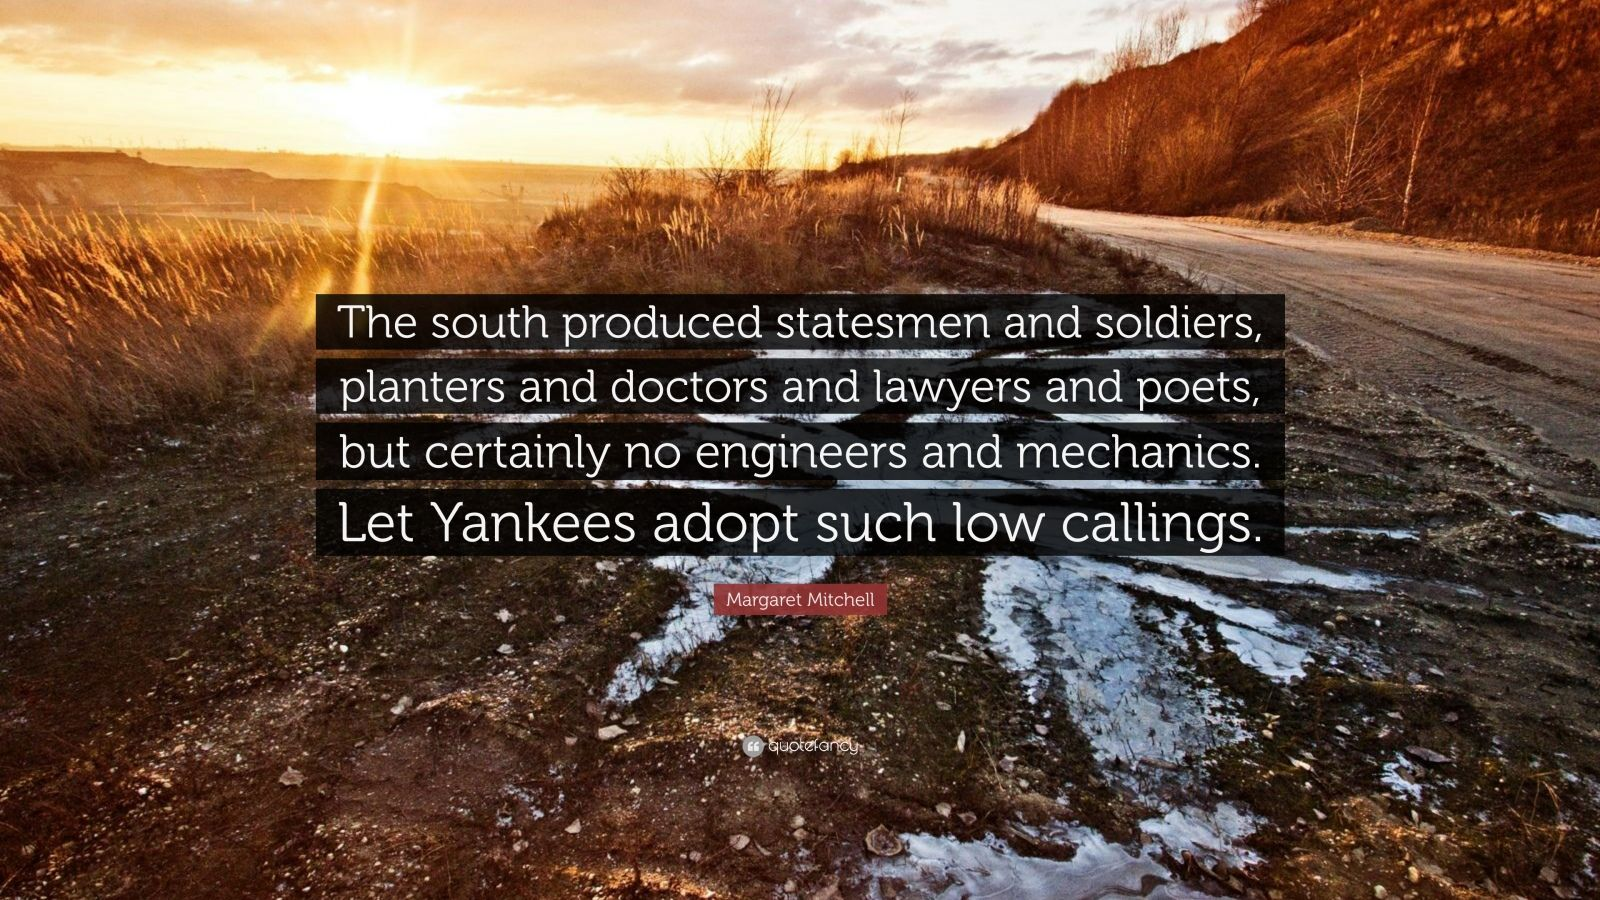 """Margaret Mitchell Quote: """"The south produced statesmen and soldiers, planters and doctors and lawyers and poets, but certainly no engineers and mechanics. Let Yankees adopt such low callings."""""""